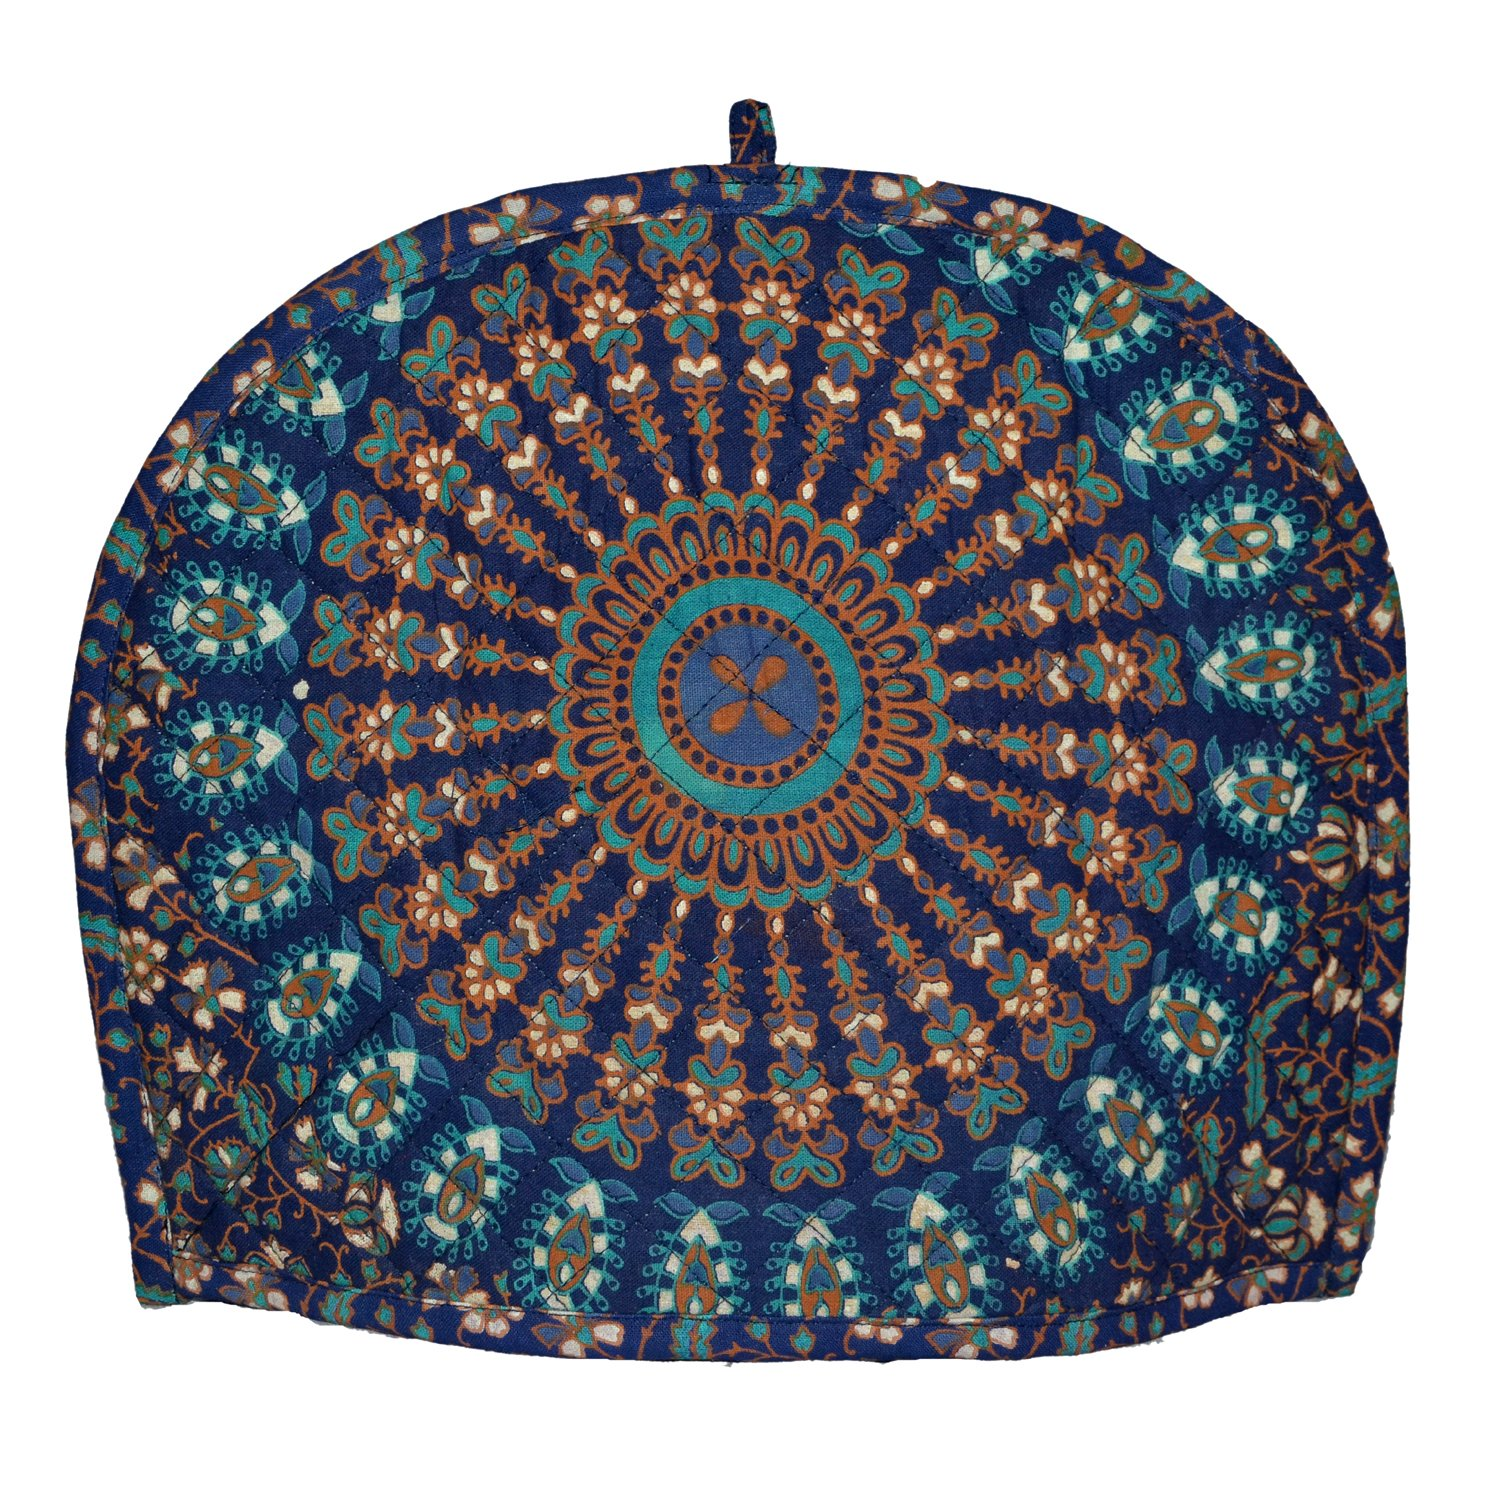 New blue ombre mandala Tea cozy For Teapot Mandala Print 100% Cotton Tea Cosy, tea cozy for 2 cup teapot,Tea Pot Cover,Tea Cozy cover, blue ombre Mandala Tea cosy Cover by Marudhara Fashion (Image #3)